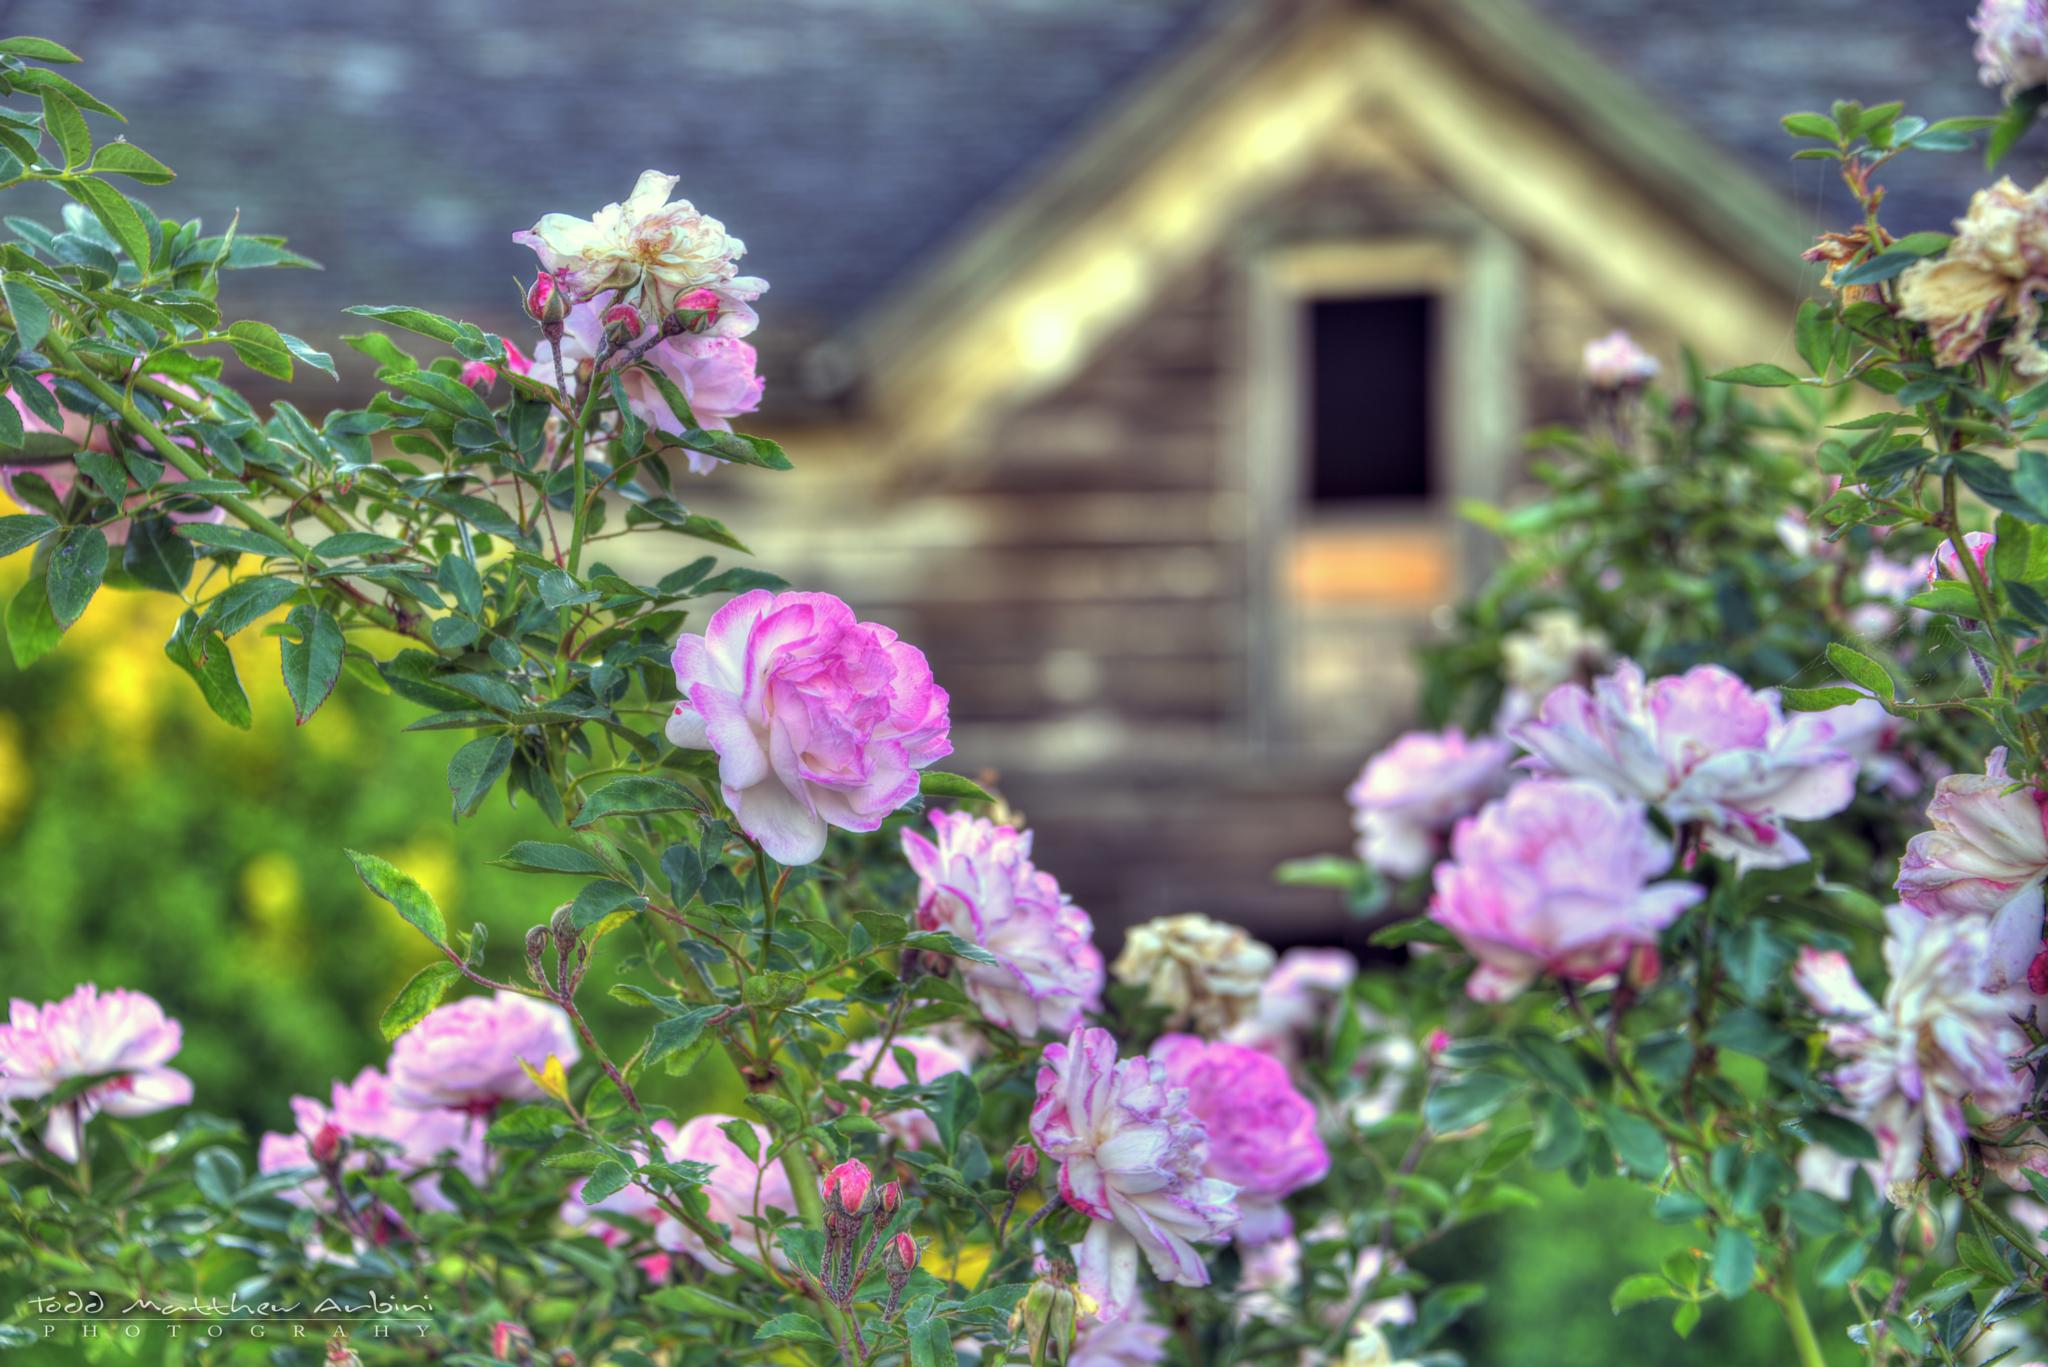 Old House and Roses by Todd Arbini